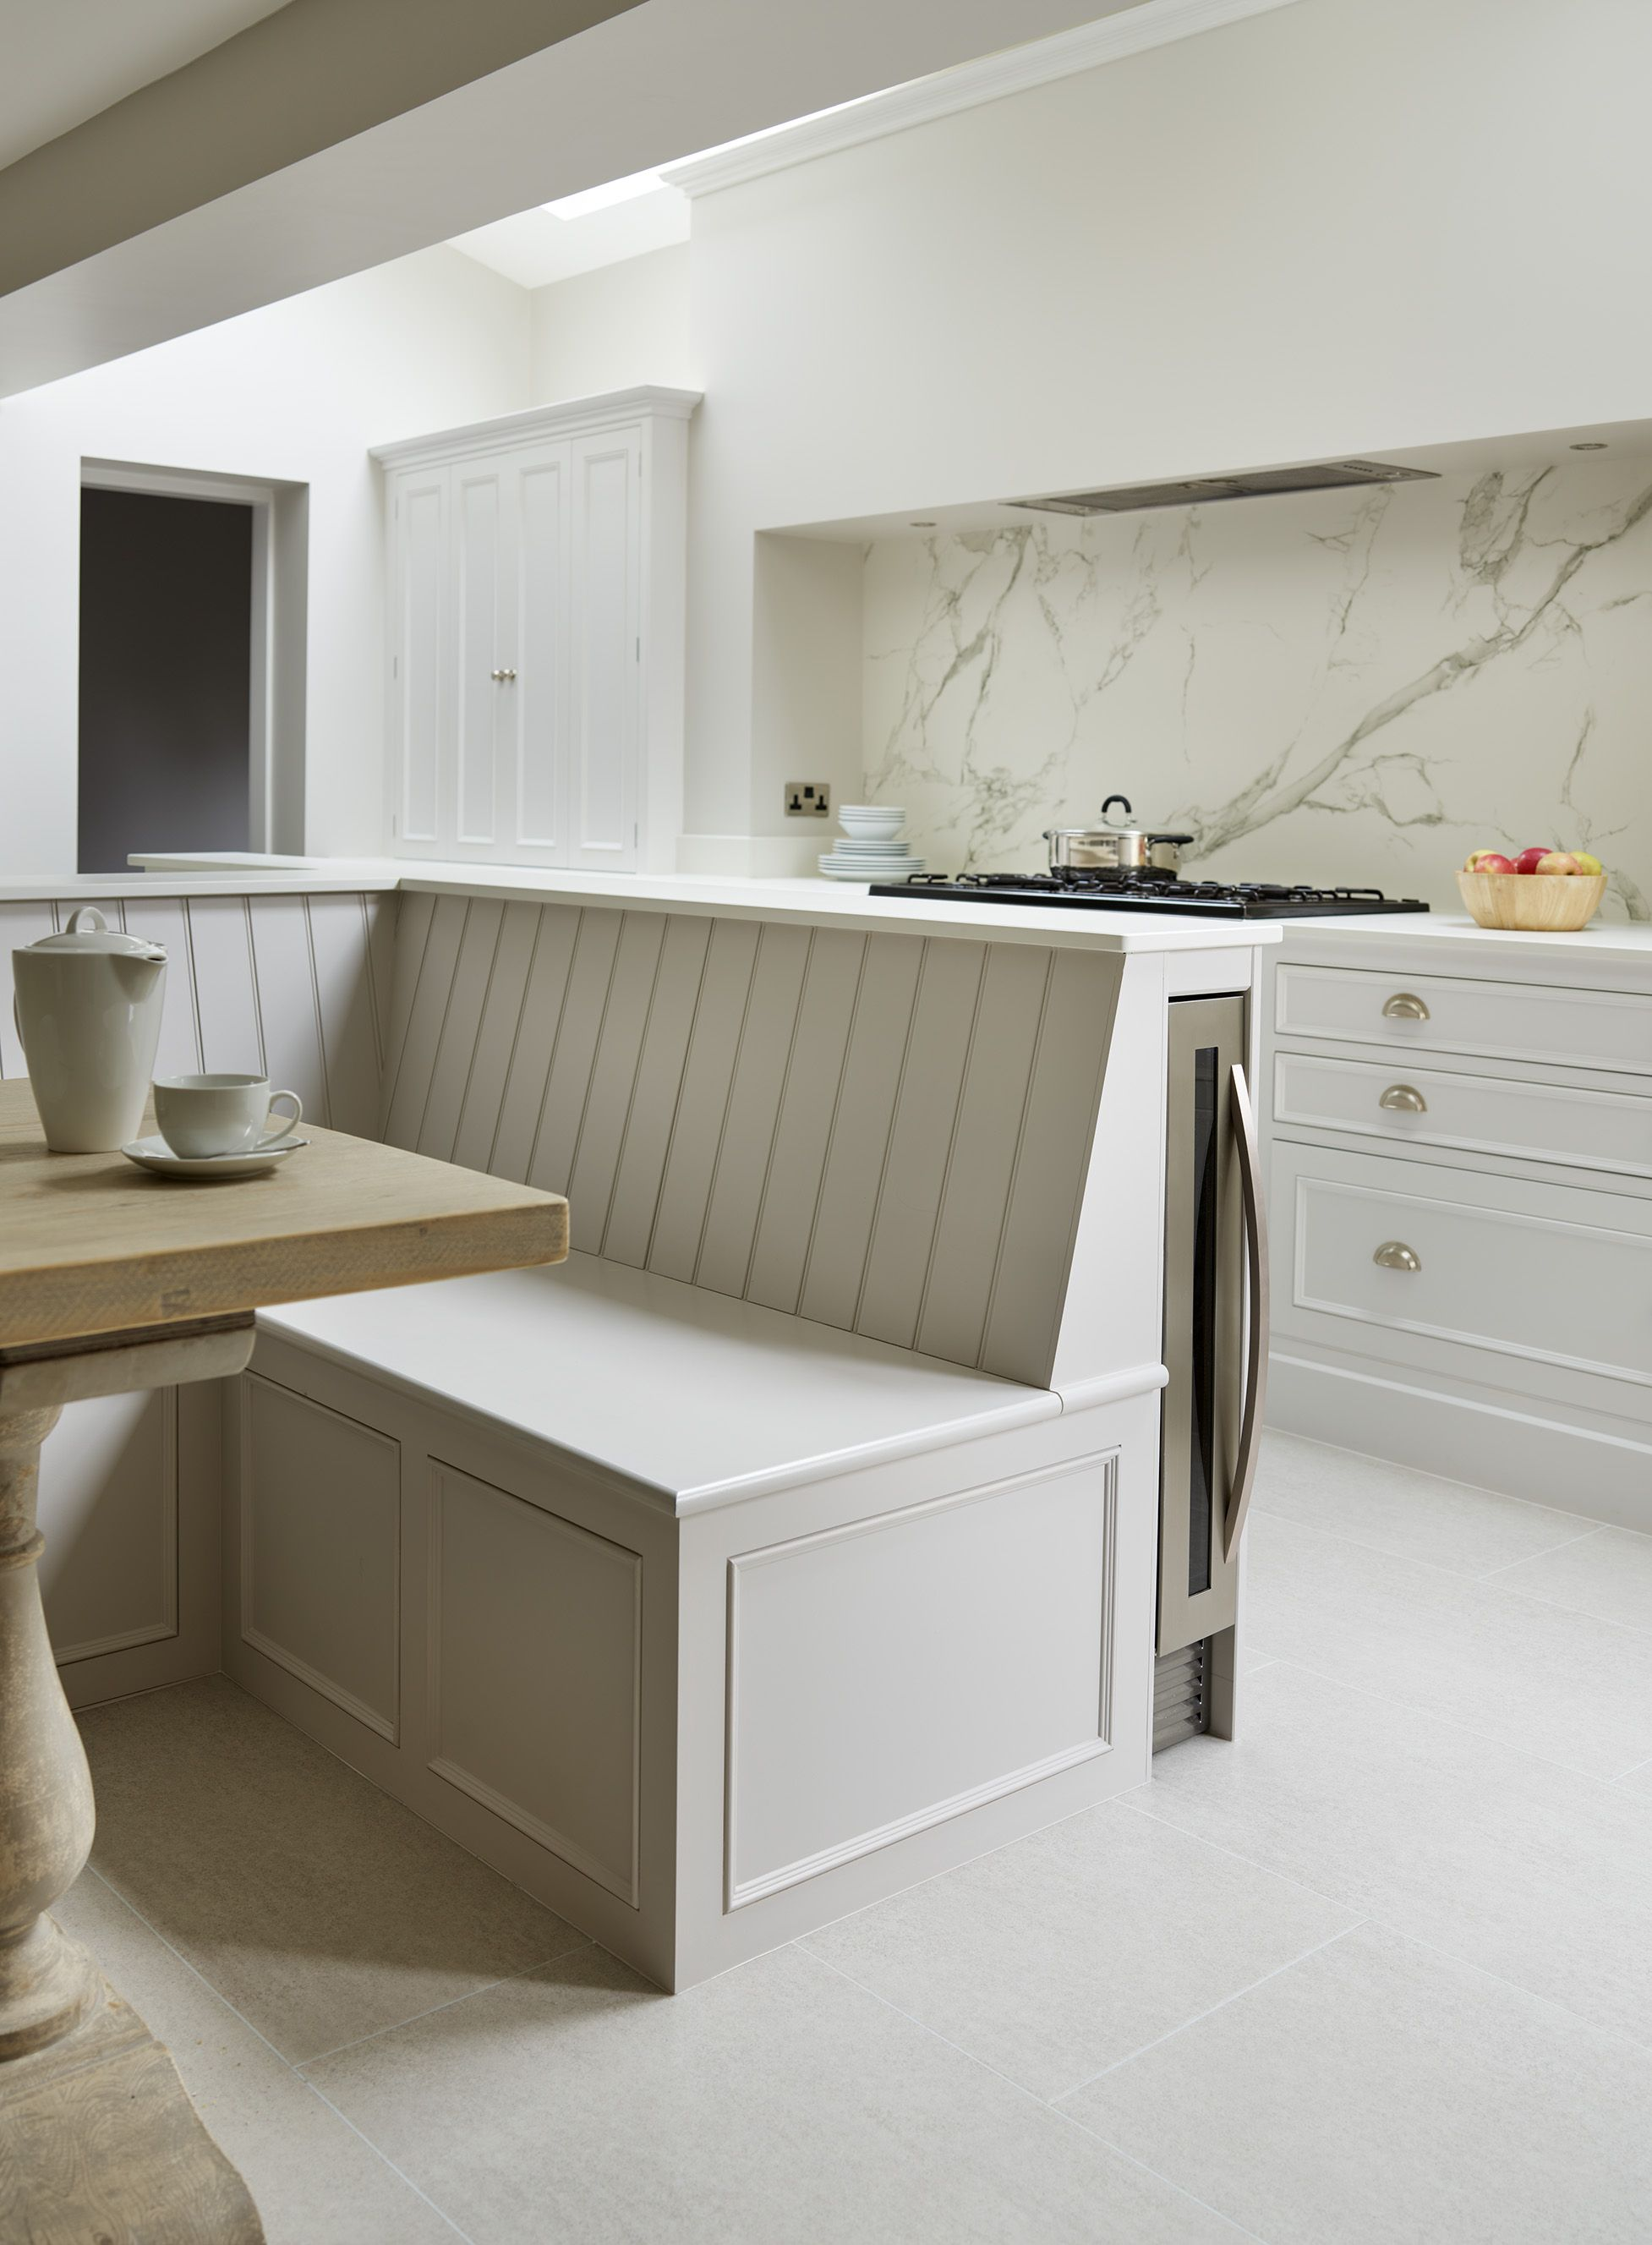 This Original Kitchen Features A Slim Wine Chiller That We Have Built Into Our Bench Seating Kitchen Seating Bench Seating Kitchen Banquette Seating In Kitchen